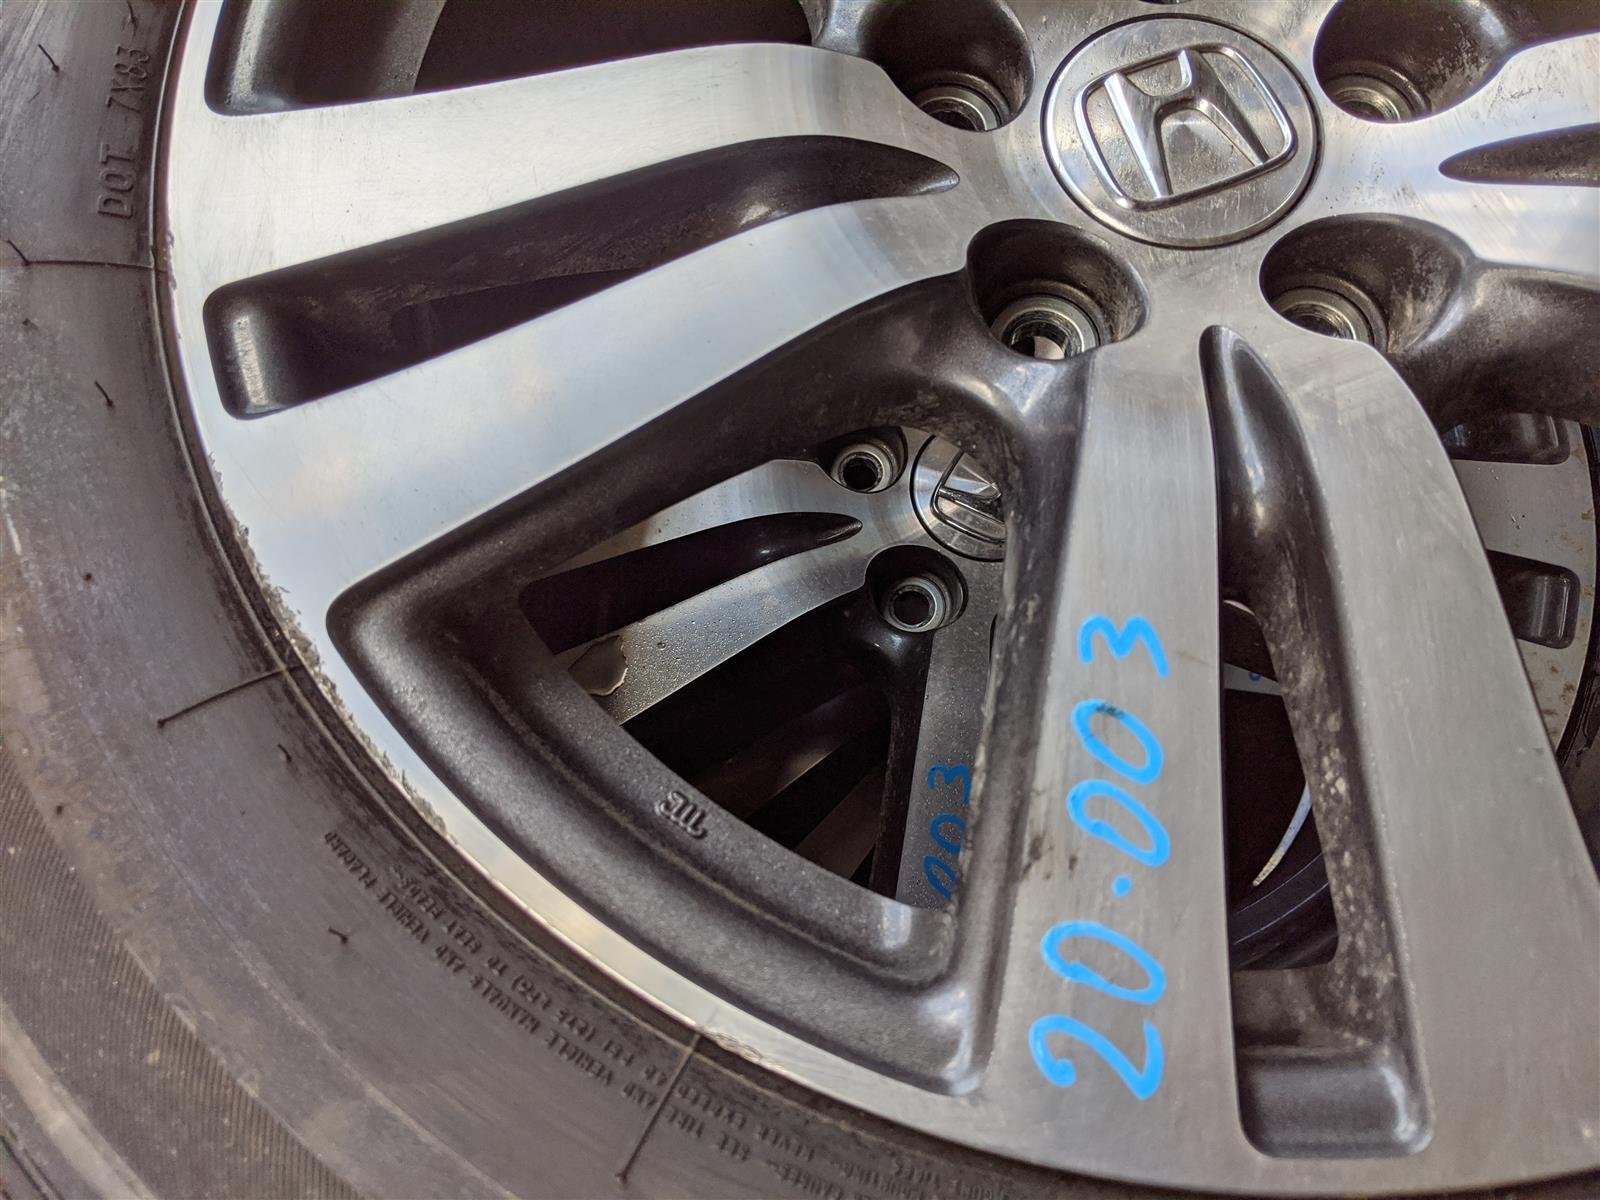 2016 Honda Pilot 18x8 Alloy Wheel Rim, Curb Scratches Replacement